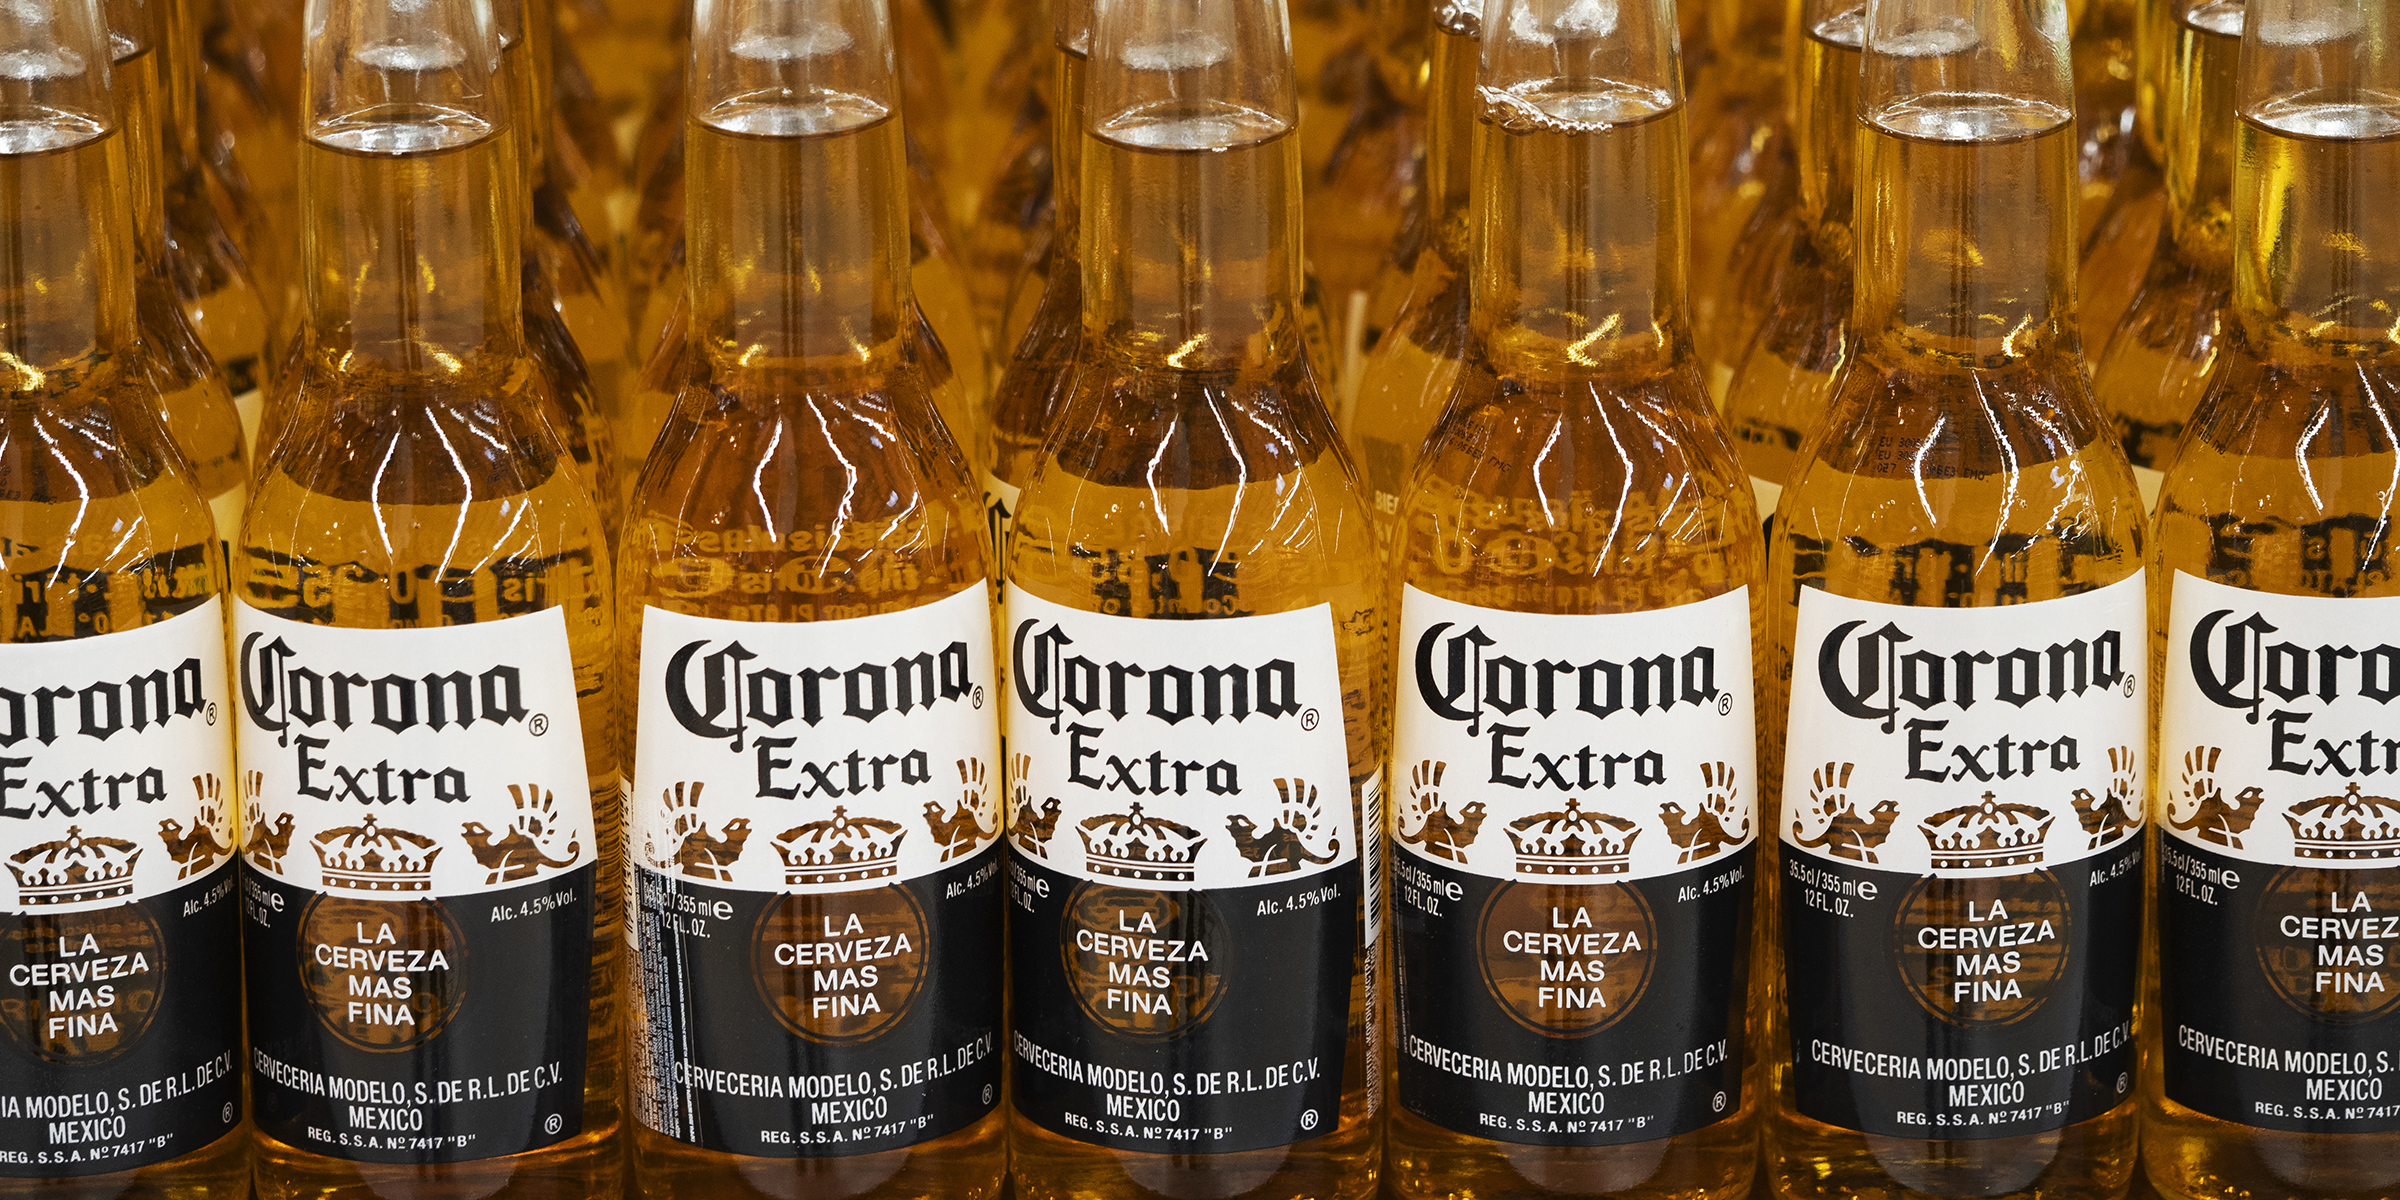 Coronavirus Stops Corona Beer Production